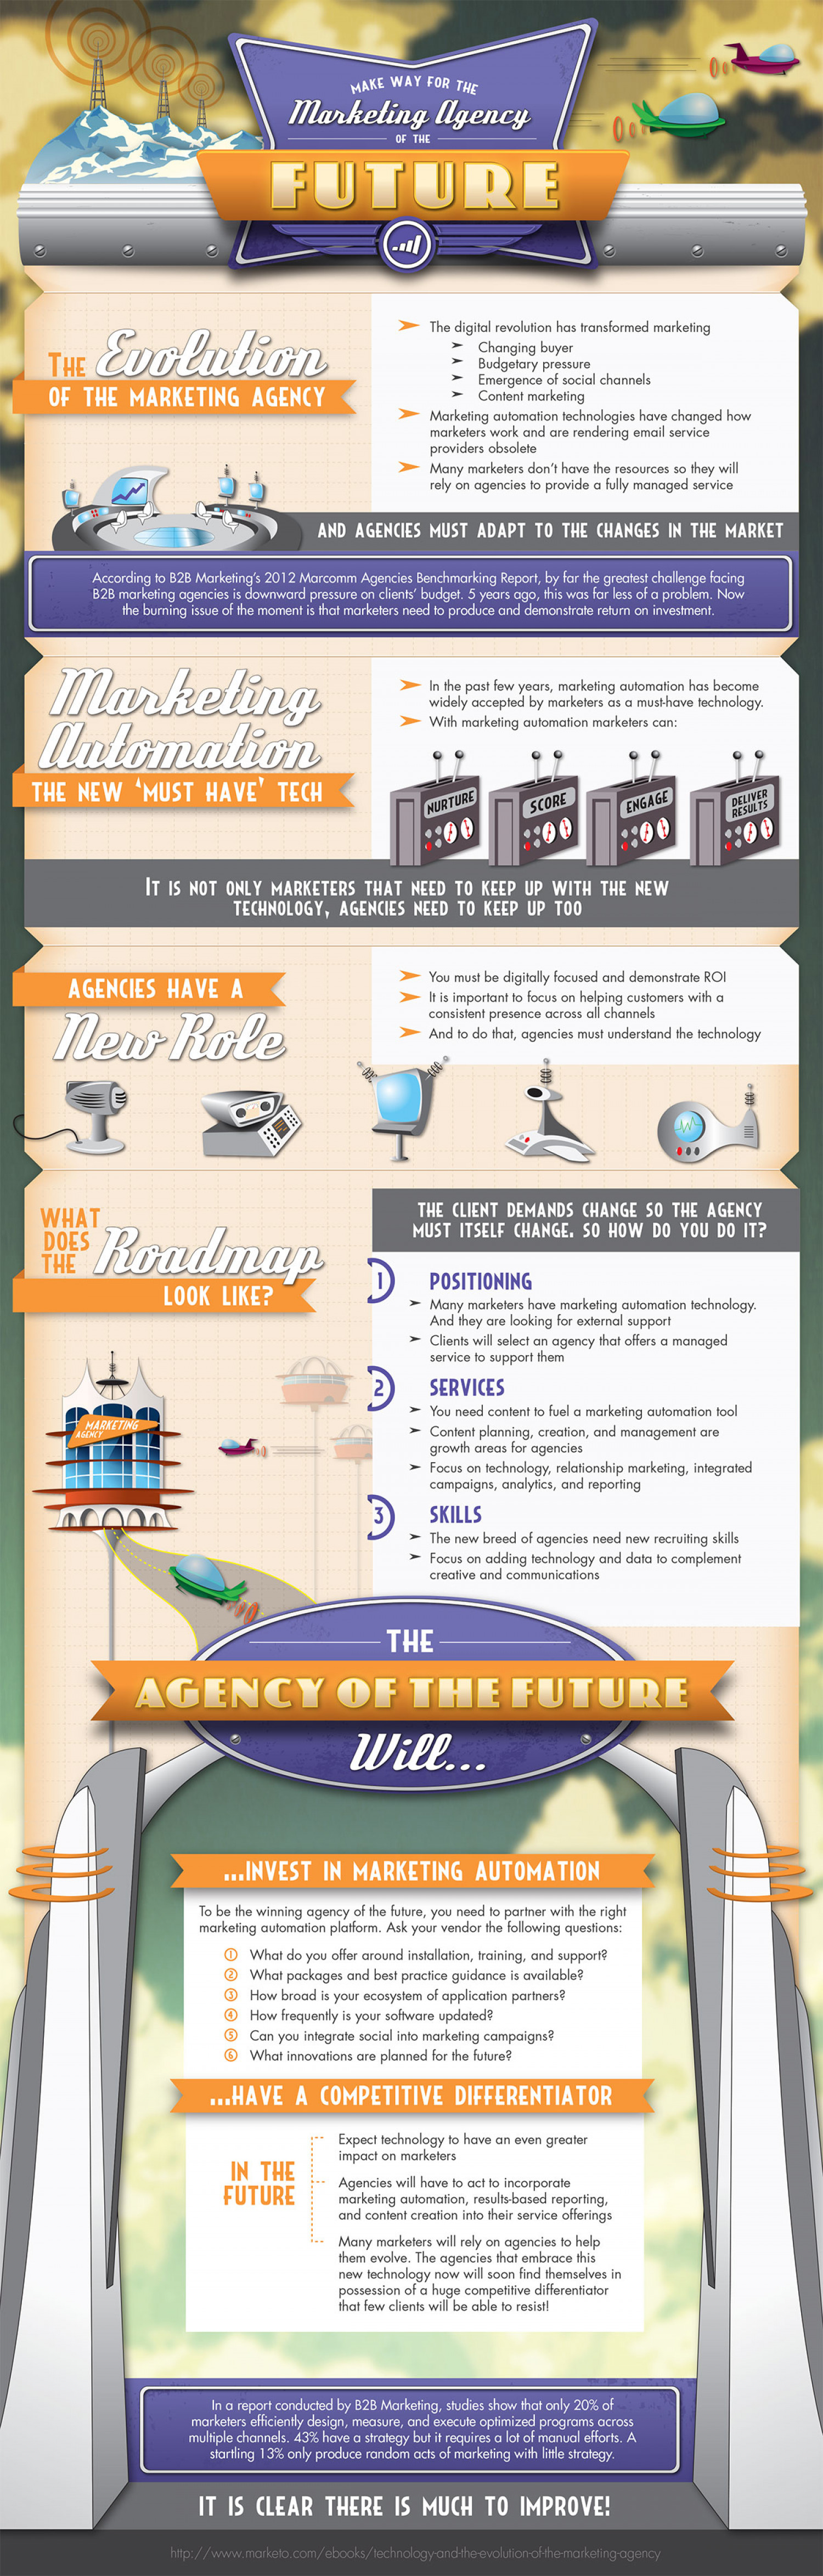 Make Way For The Agency of the Future  Infographic